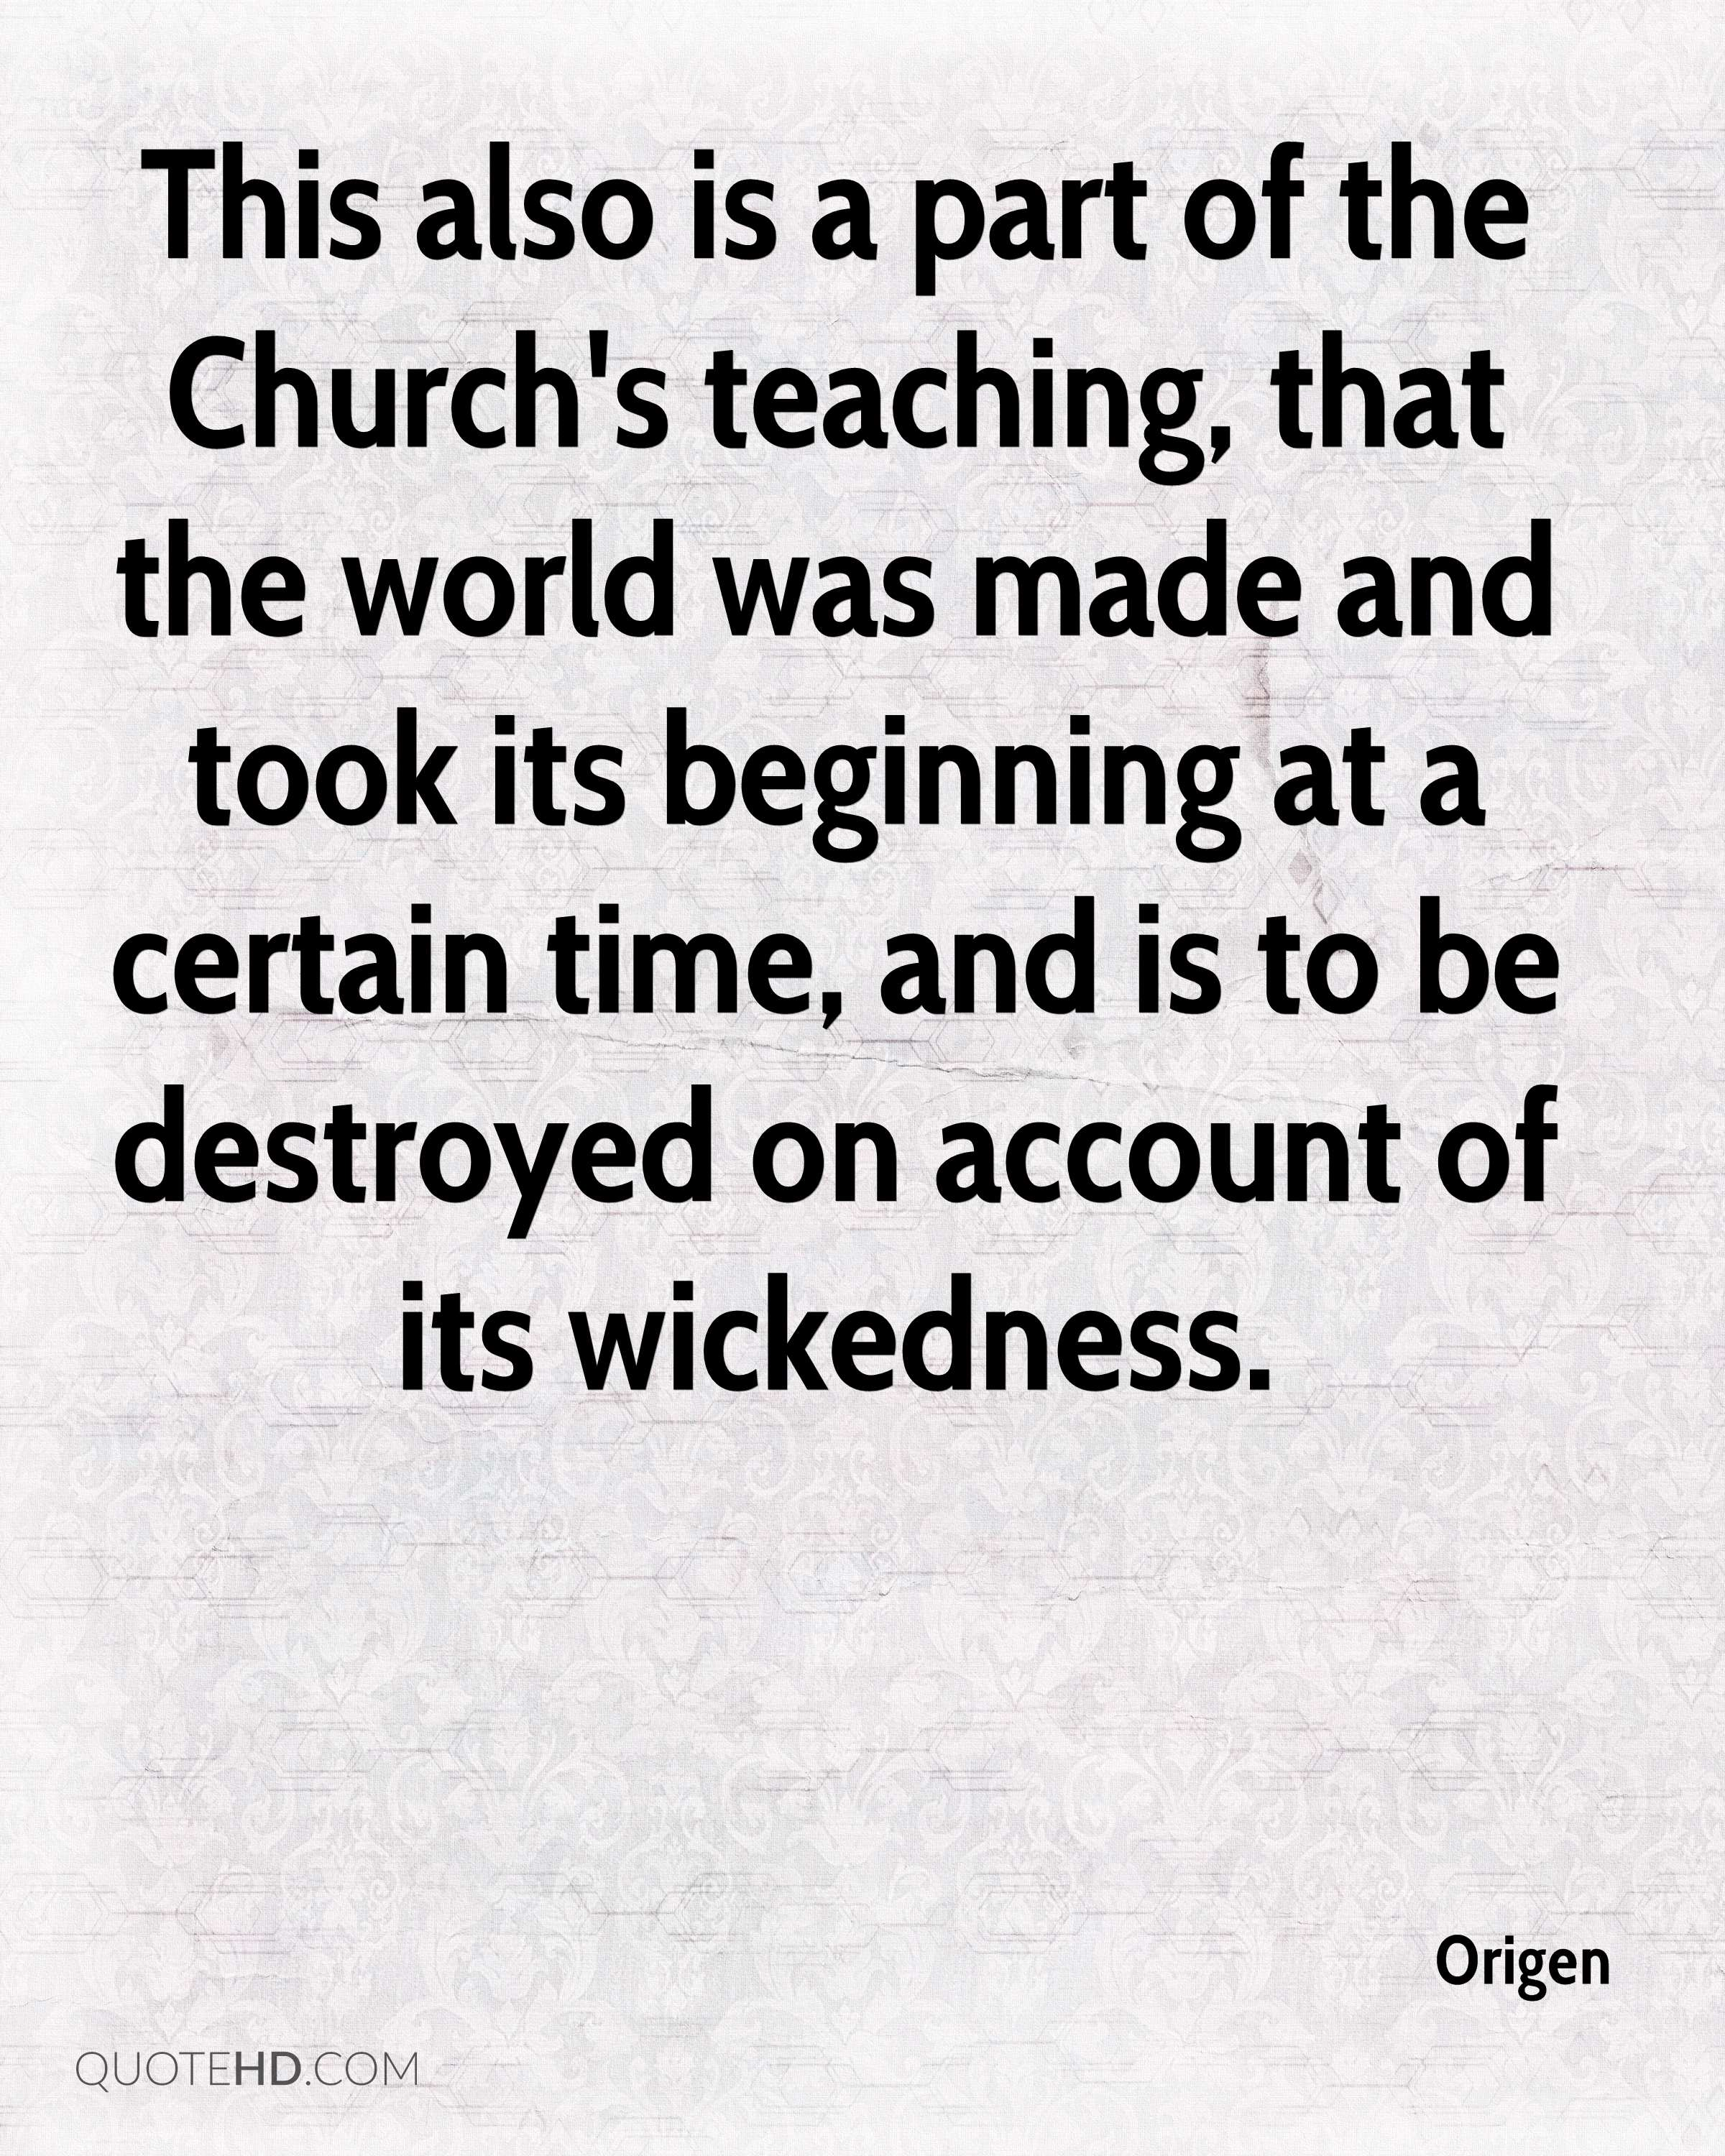 This also is a part of the Church's teaching, that the world was made and took its beginning at a certain time, and is to be destroyed on account of its wickedness.